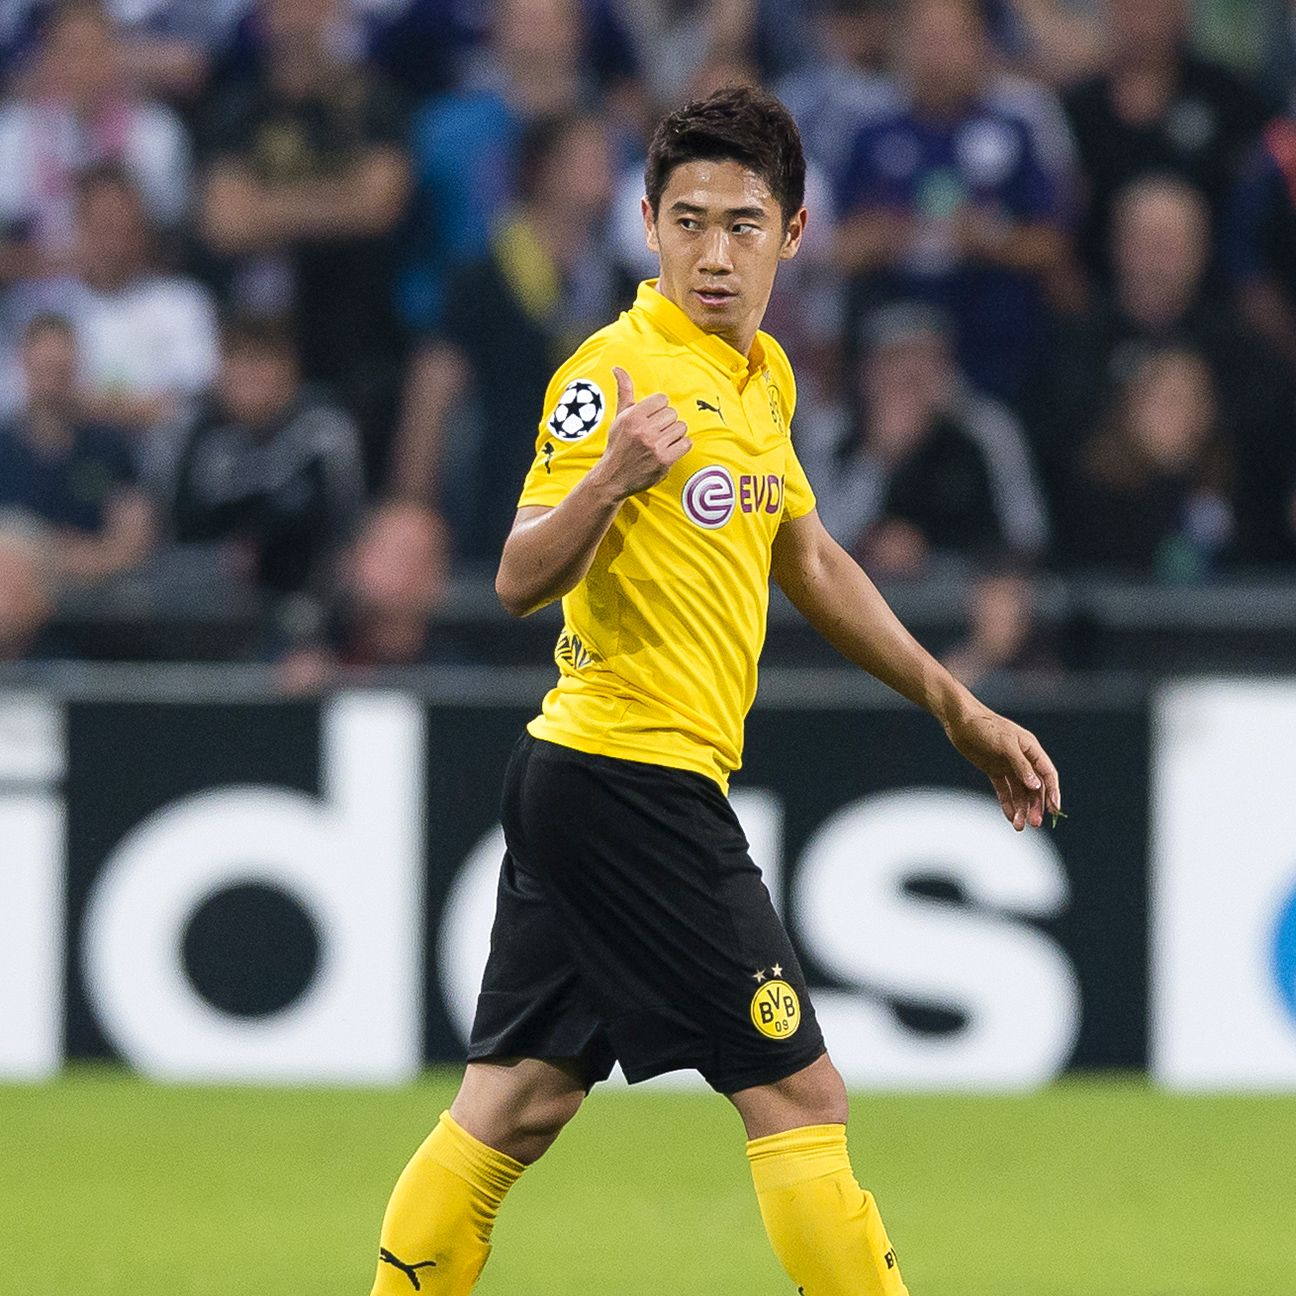 A fit Shinji Kagawa would provide a big boost for Dortmund against Hamburg.